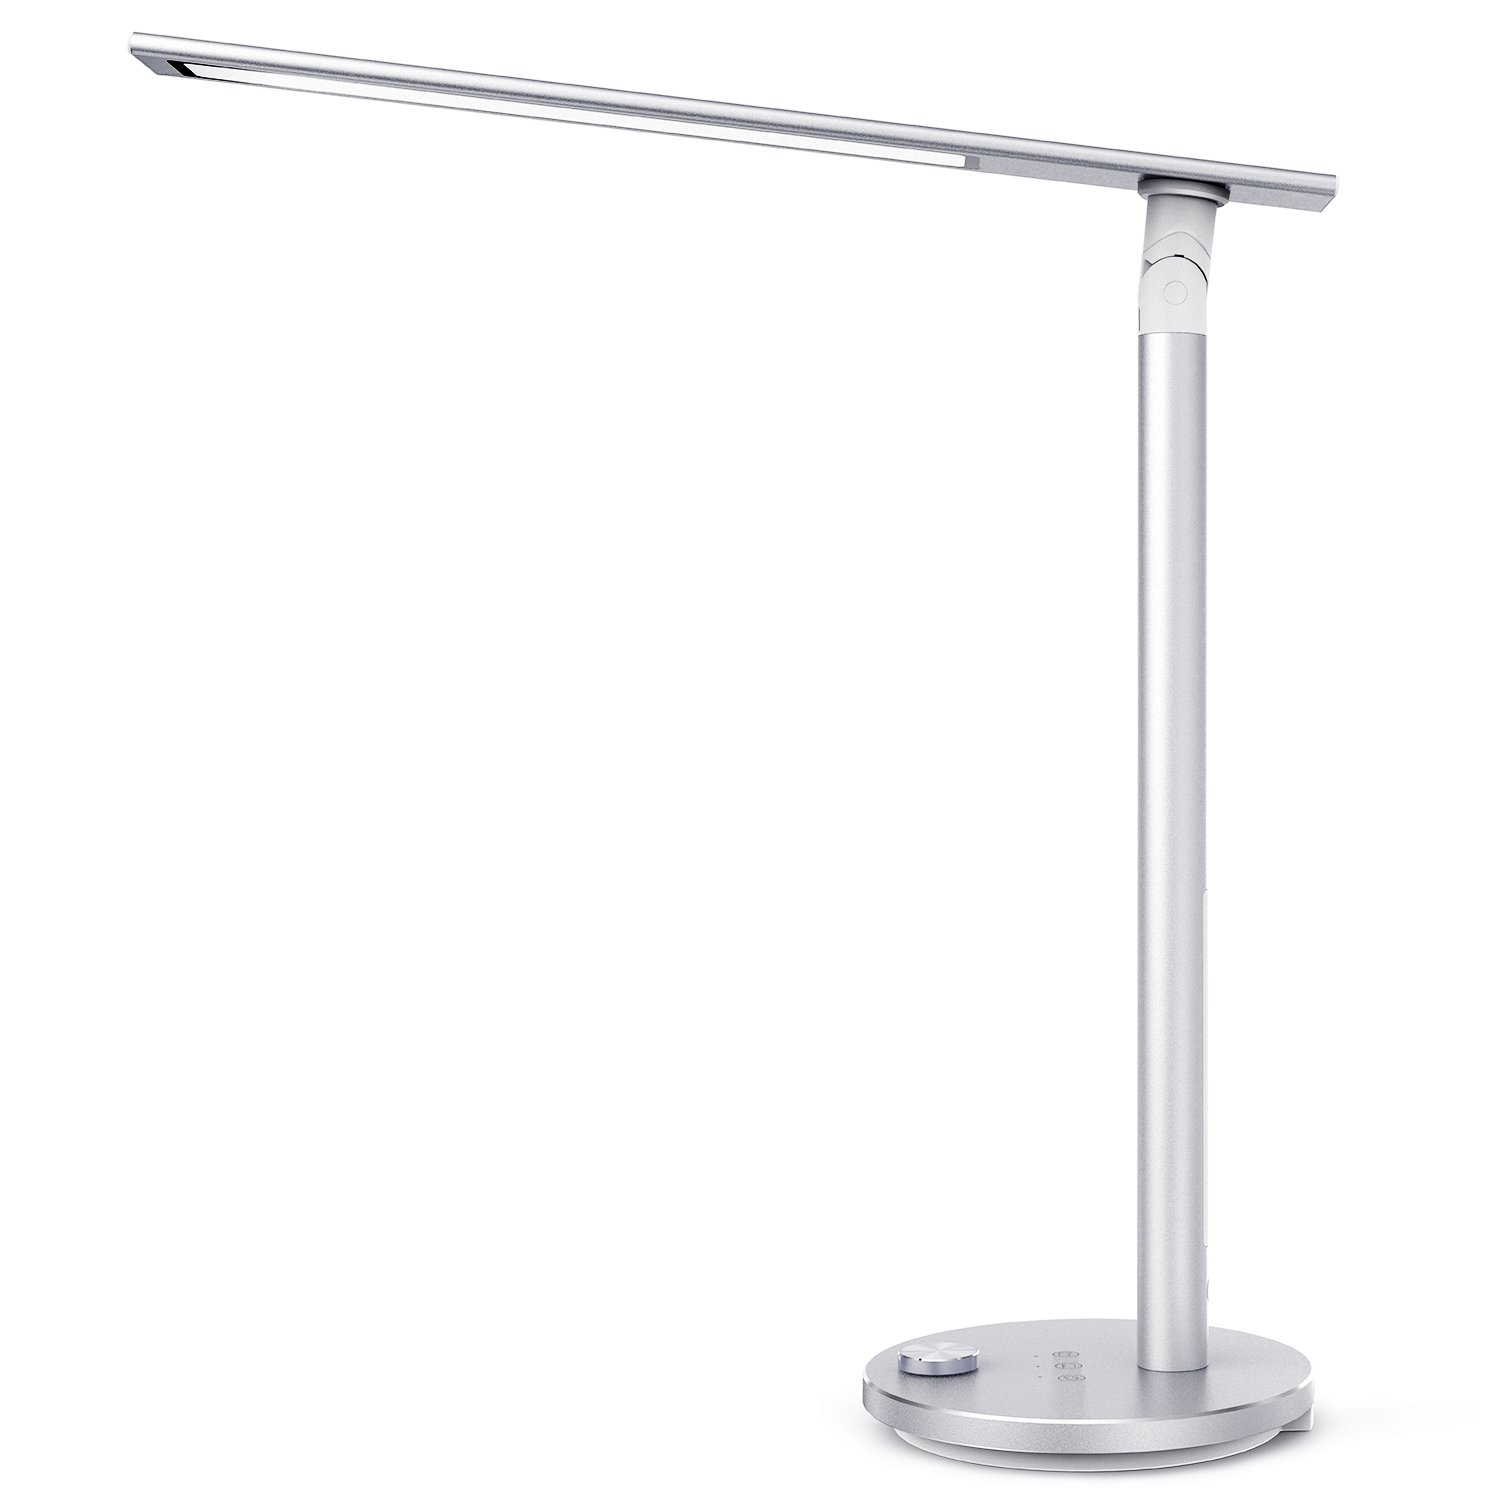 TaoTronics Eye-caring LED Desk Lamp, Aluminum Alloy Table Lamp with 3 Color Modes, High CRI 92, Double-Light, Innovative Knob Control, Night Light, Official Member of Philips EnabLED Licensing Program